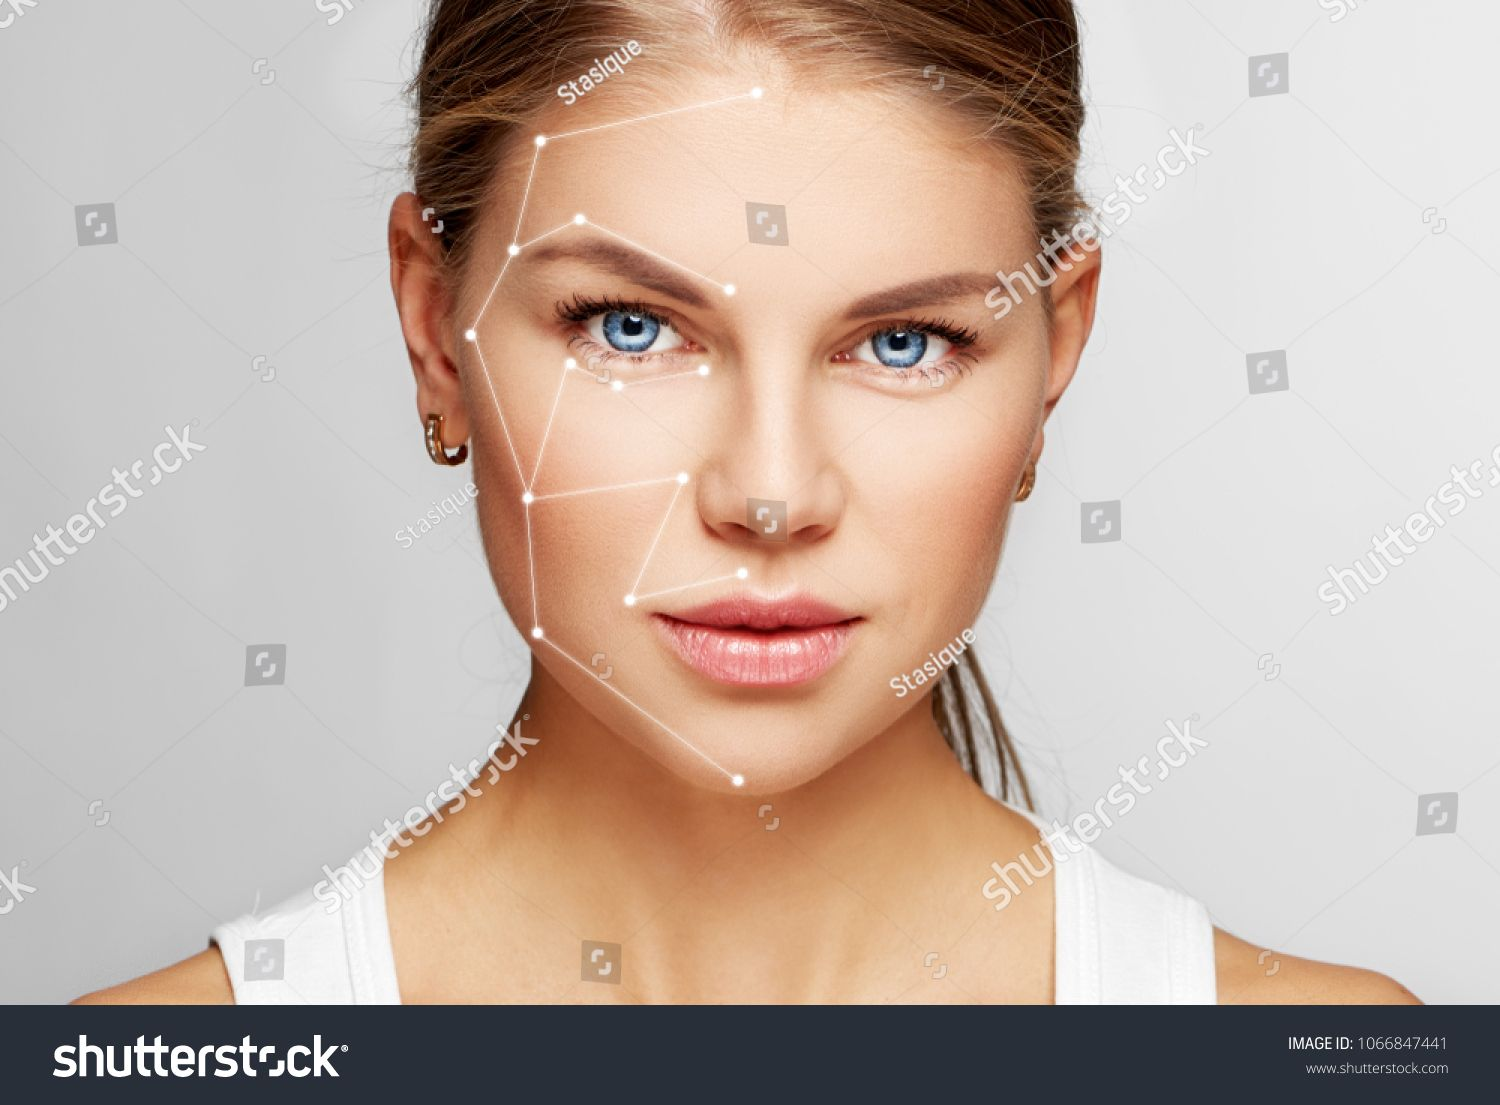 Skin Care And Technology Portrait Of Beautiful Woman Face With Drawn Massage Lines Portrait Beautiful Technology Sk Beautiful Women Faces Woman Face Portrait